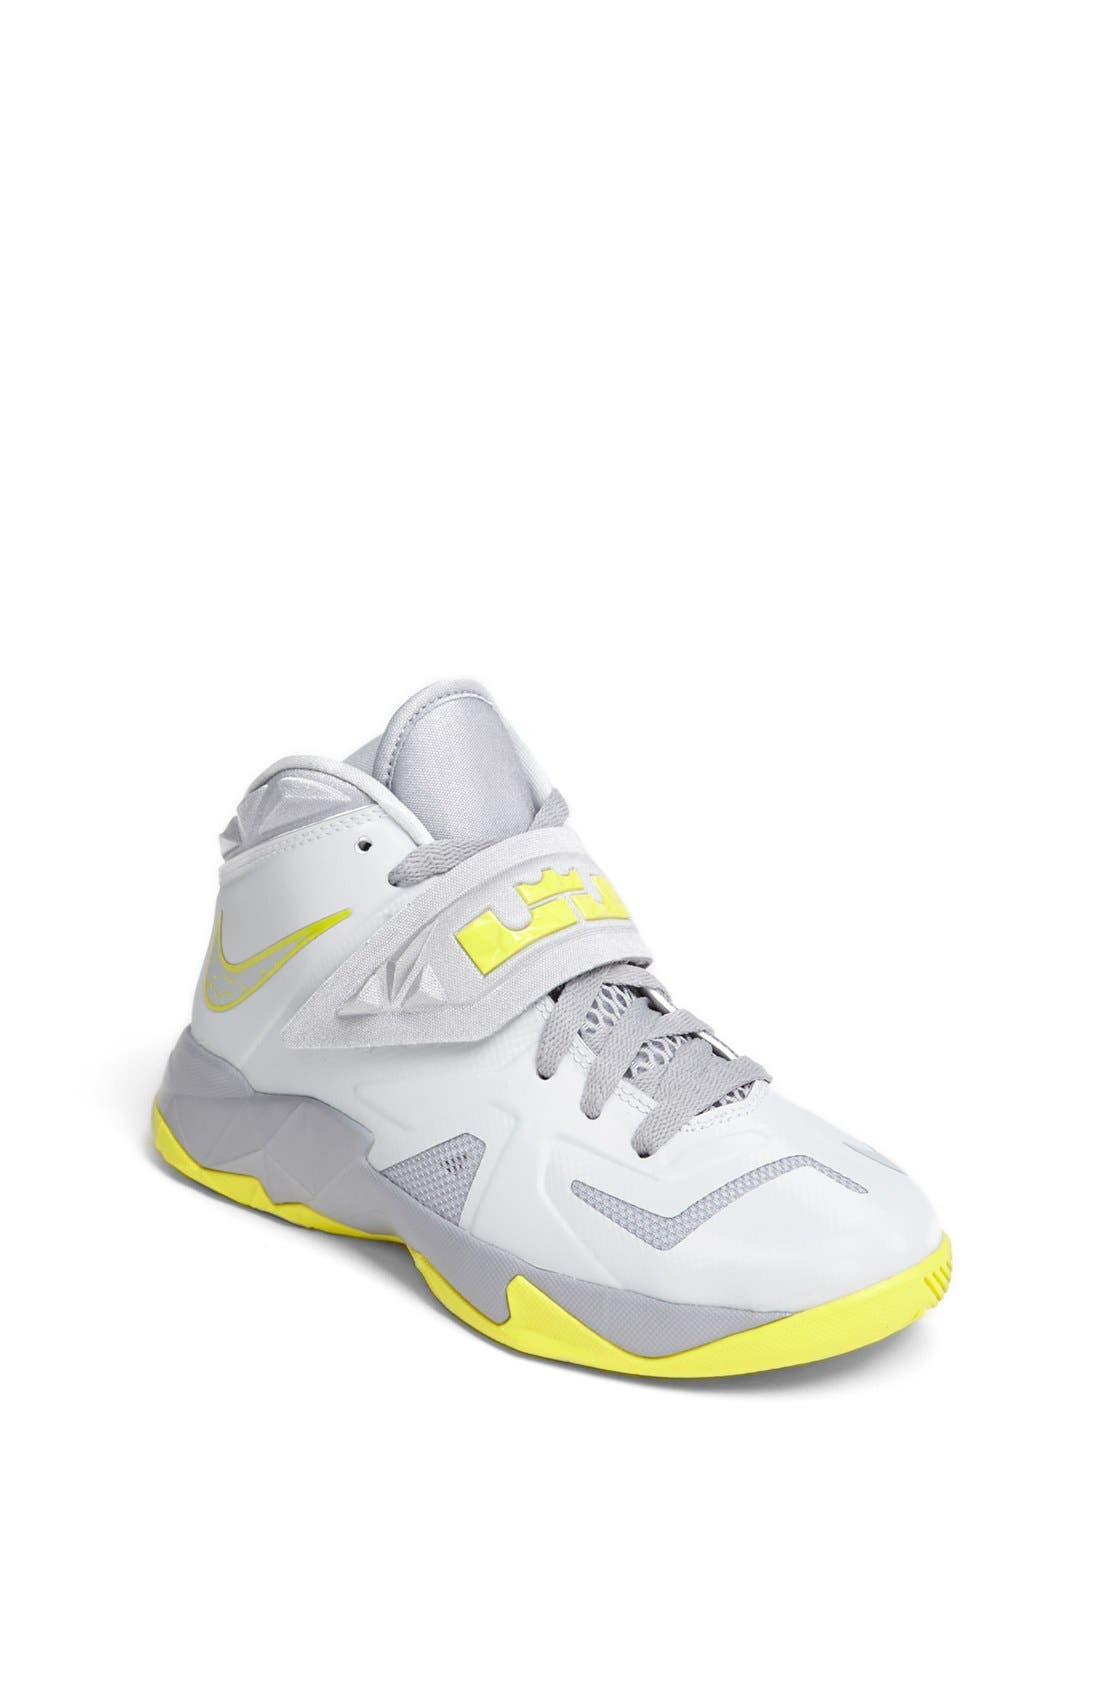 Main Image - Nike 'LeBron Zoom Soldier VII' Basketball Shoe (Big Kid)